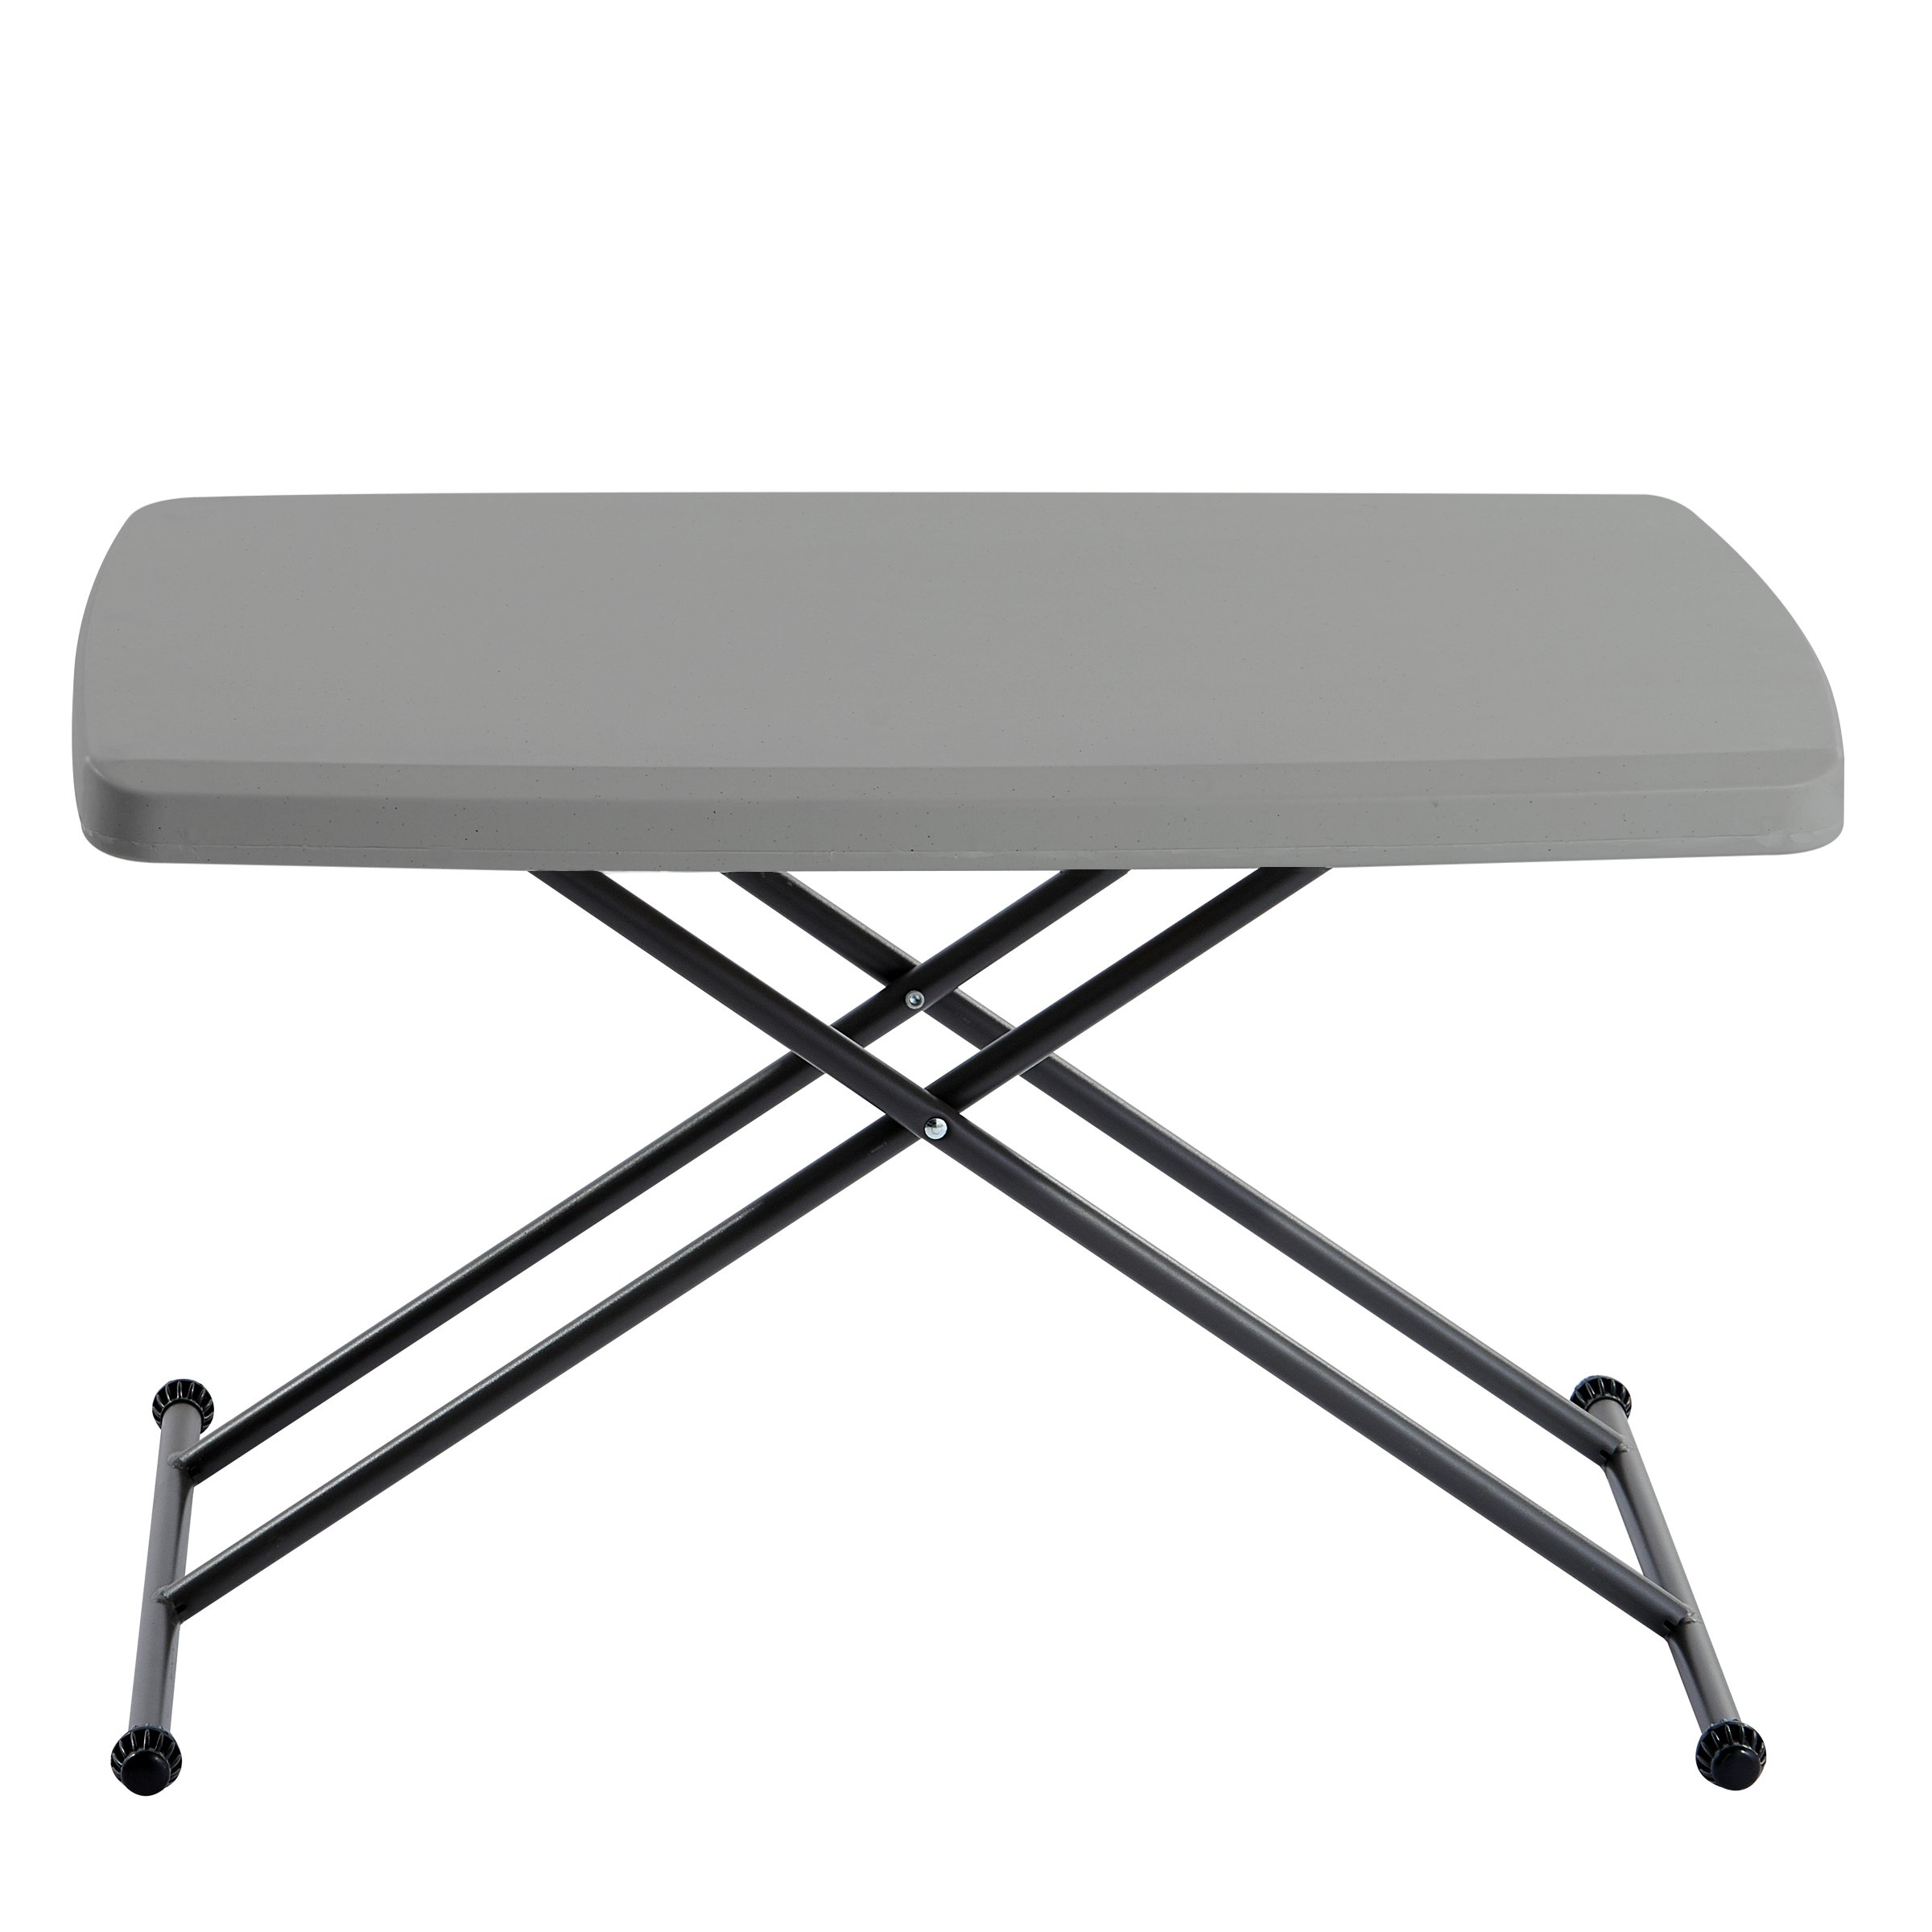 Iceberg 65491 Indestructible Too 1200 Series Resin Personal Folding Table 30 x 20 Charcoal by Iceberg (Image #3)